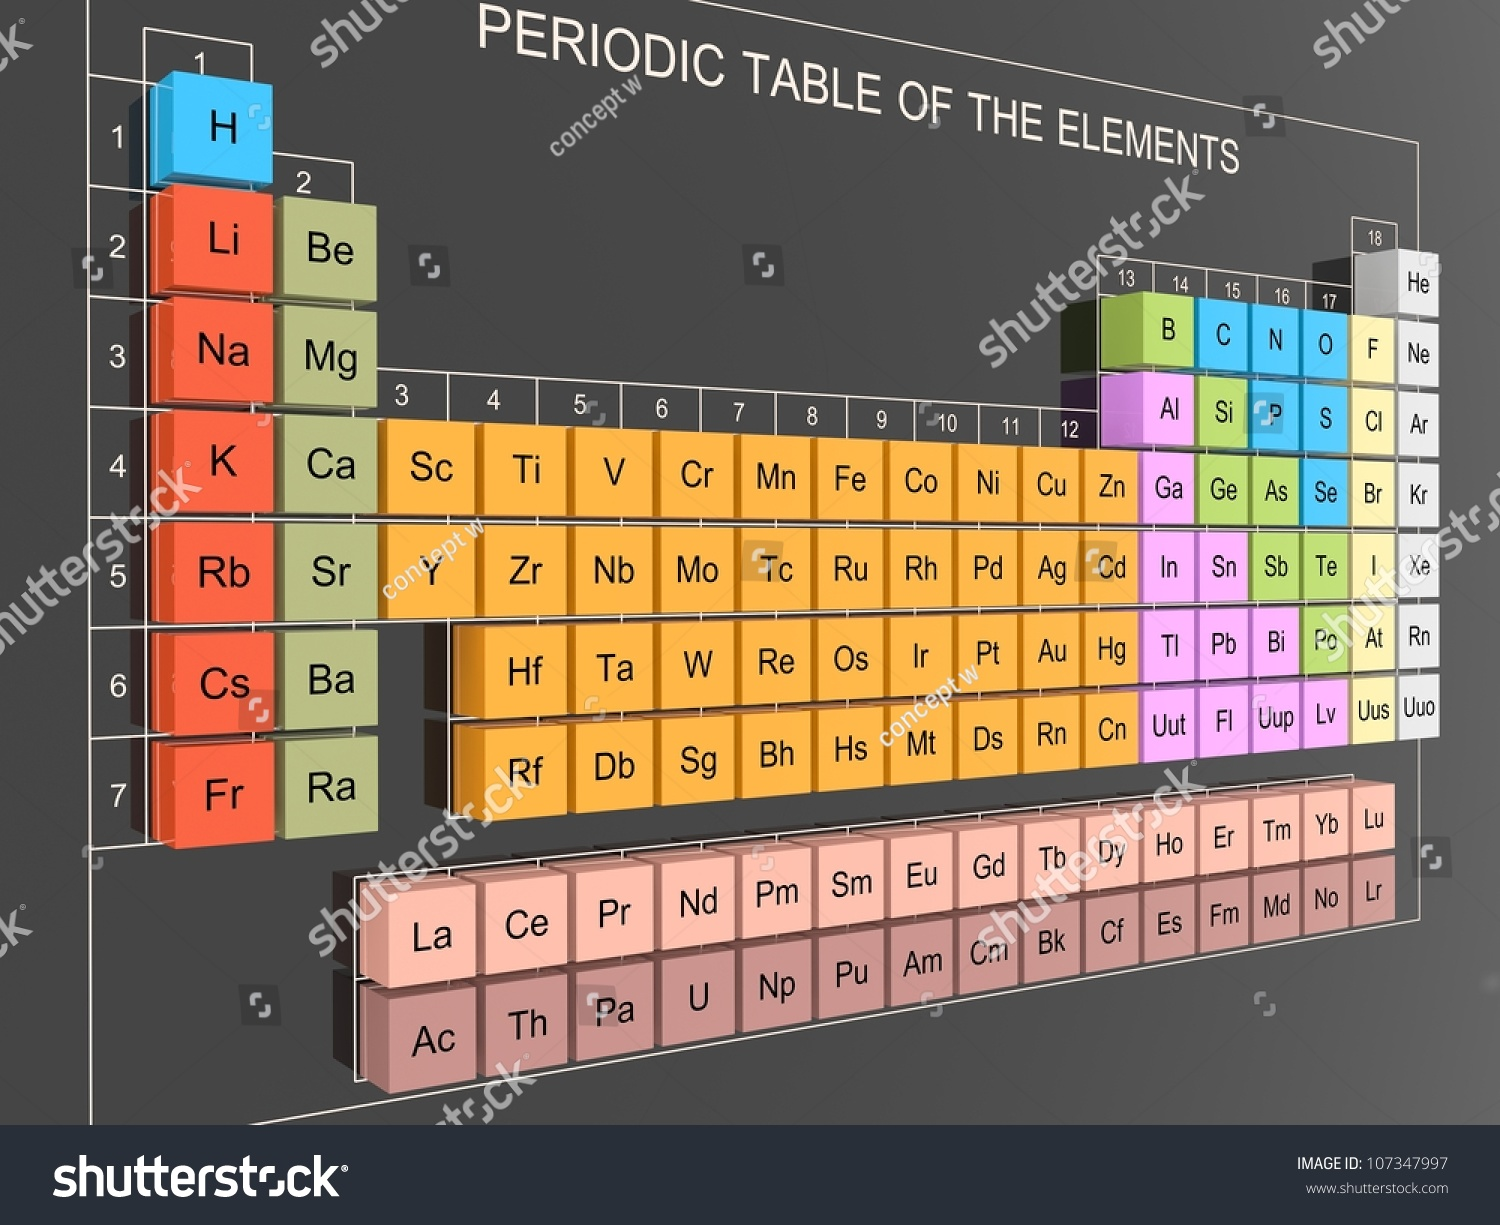 Periodic table of the elements mendeleev table on wall - Periodic table of html elements ...